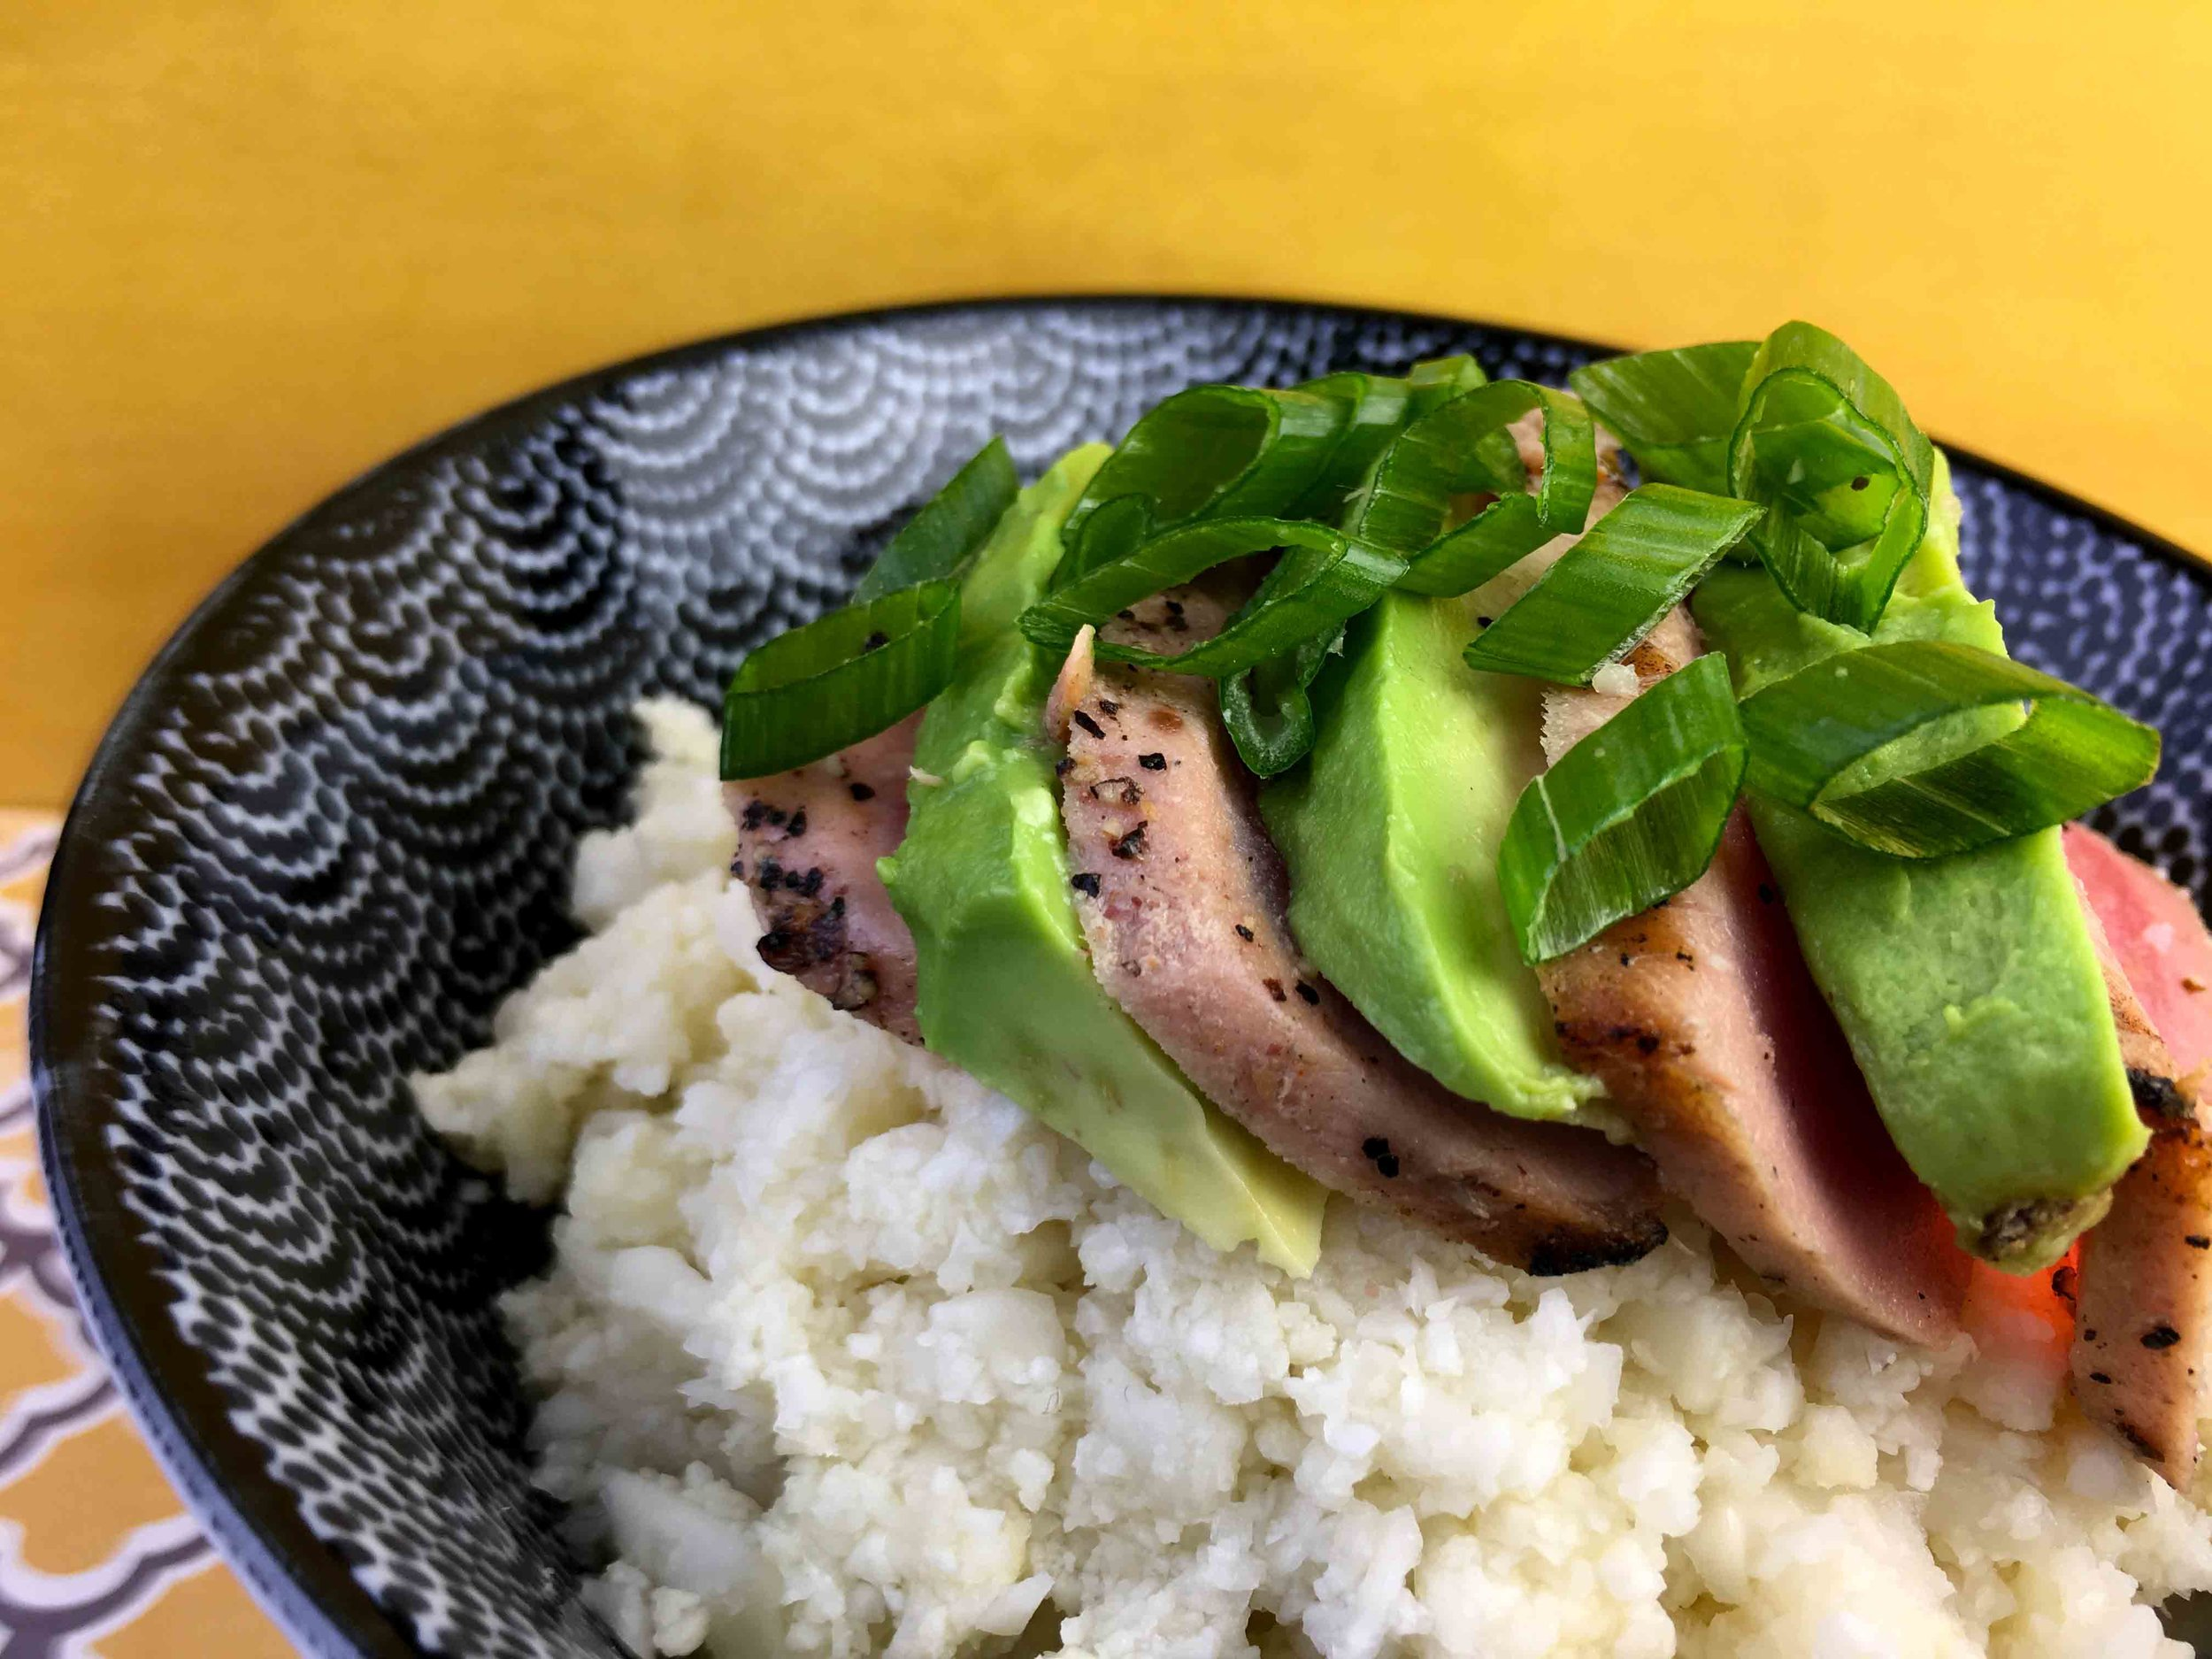 Low Carb Keto Cauliflower Chirashi with Avocado and Seared Tuna Recipe